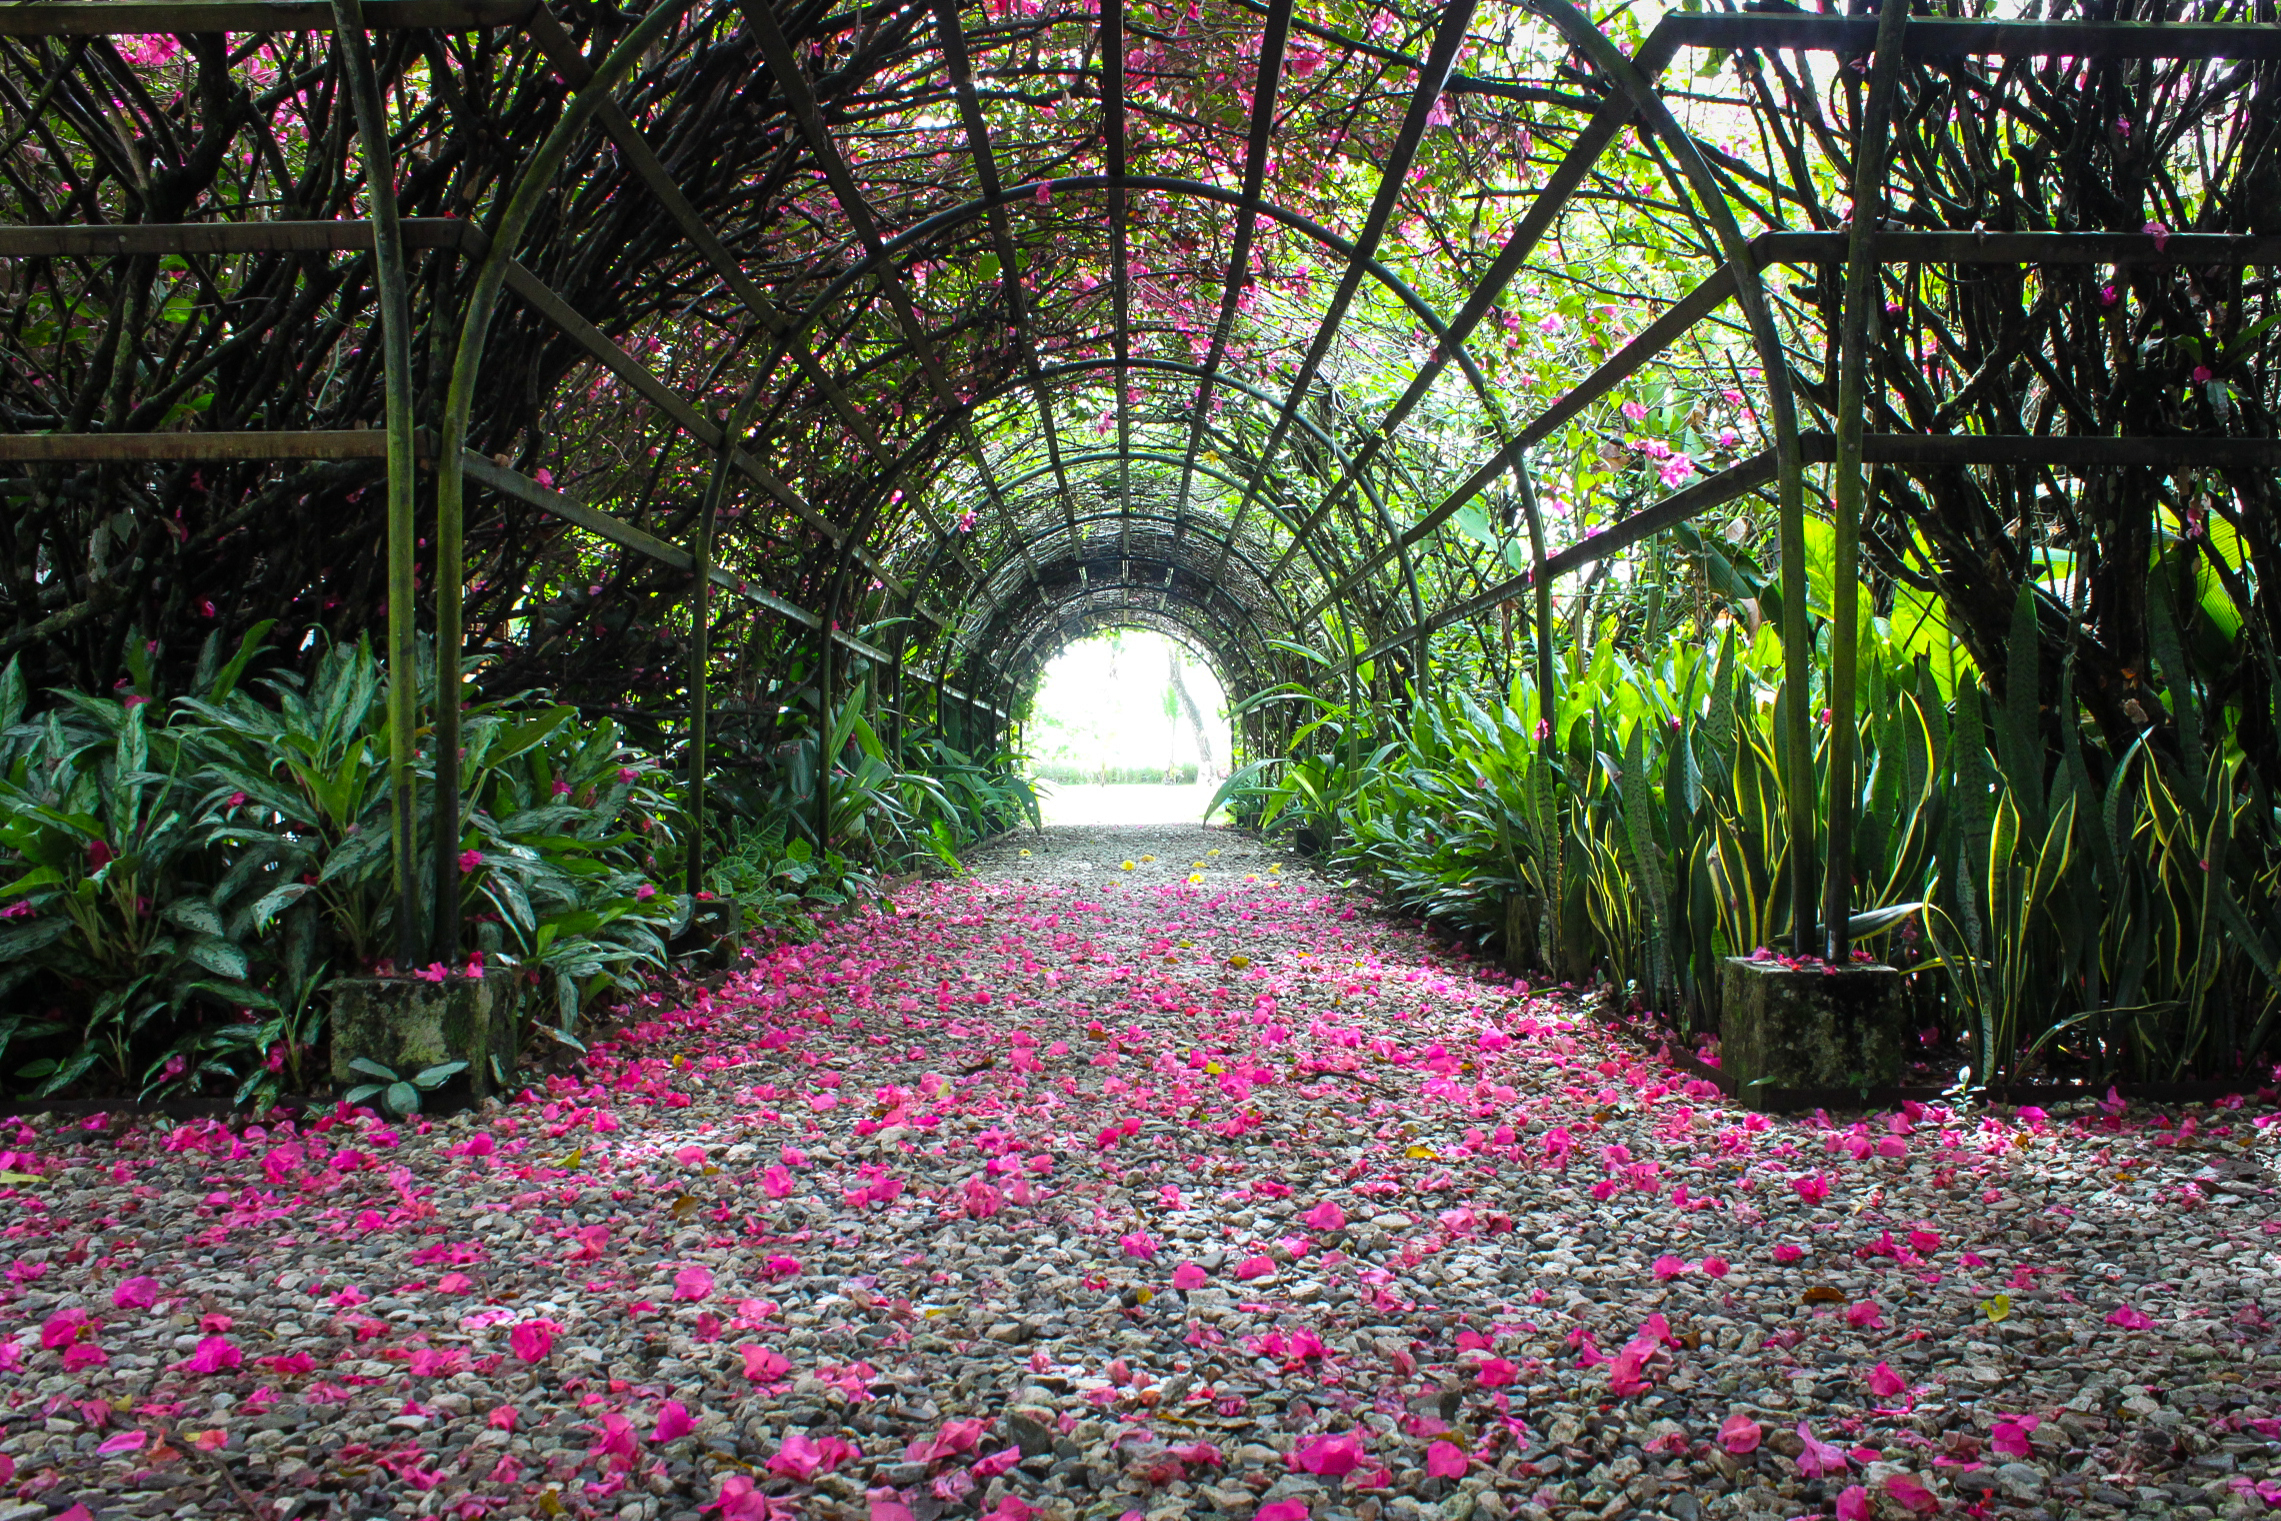 I fell in love with this tunnel right when I got here